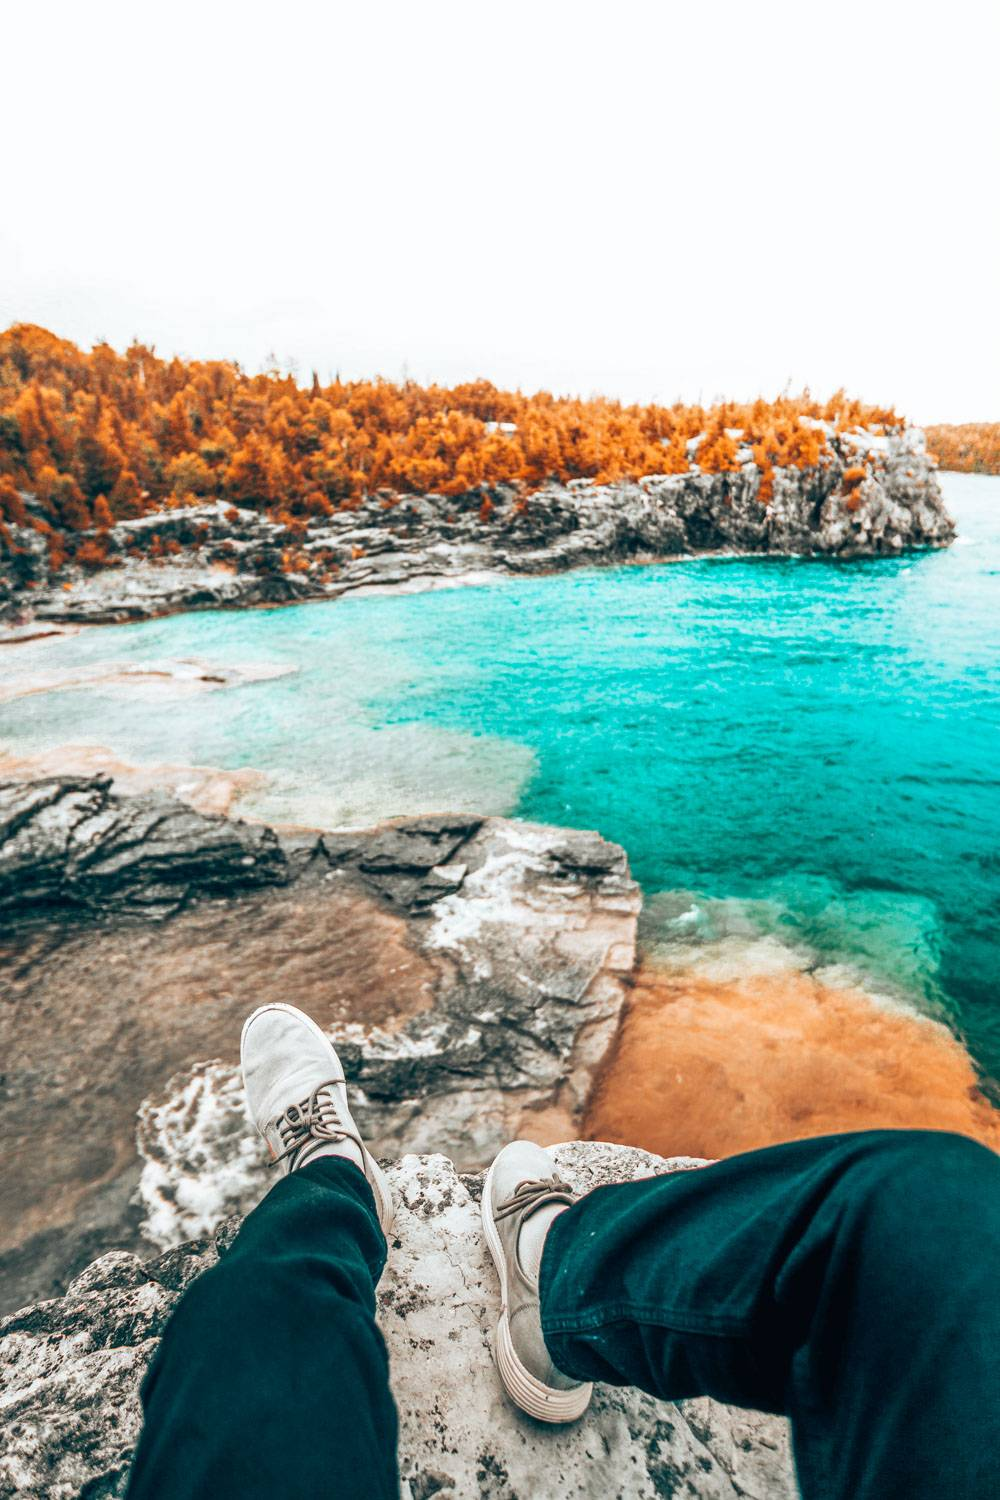 Looking for the best provincial parks in ontario or Canada? Fret not, because we have the ultimate of all the best parts including highlights, how to get there, and where to stay and where the closest airport is.